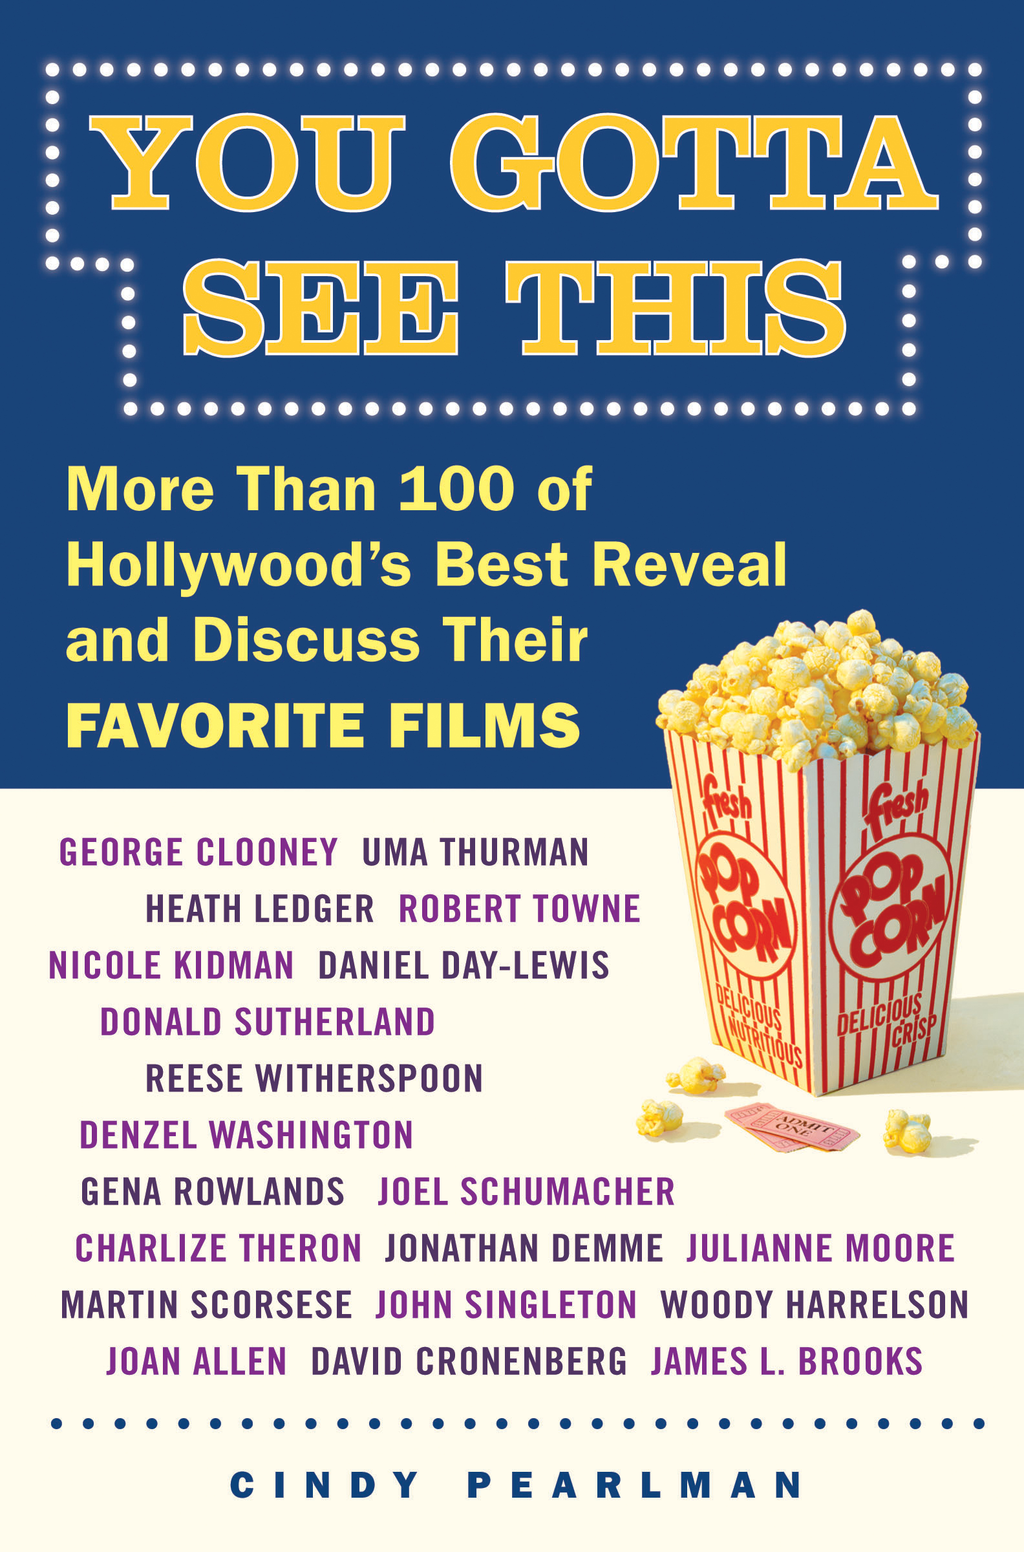 You Gotta See This More Than 100 of Hollywood's Best Reveal and Discuss Their Favorite Films